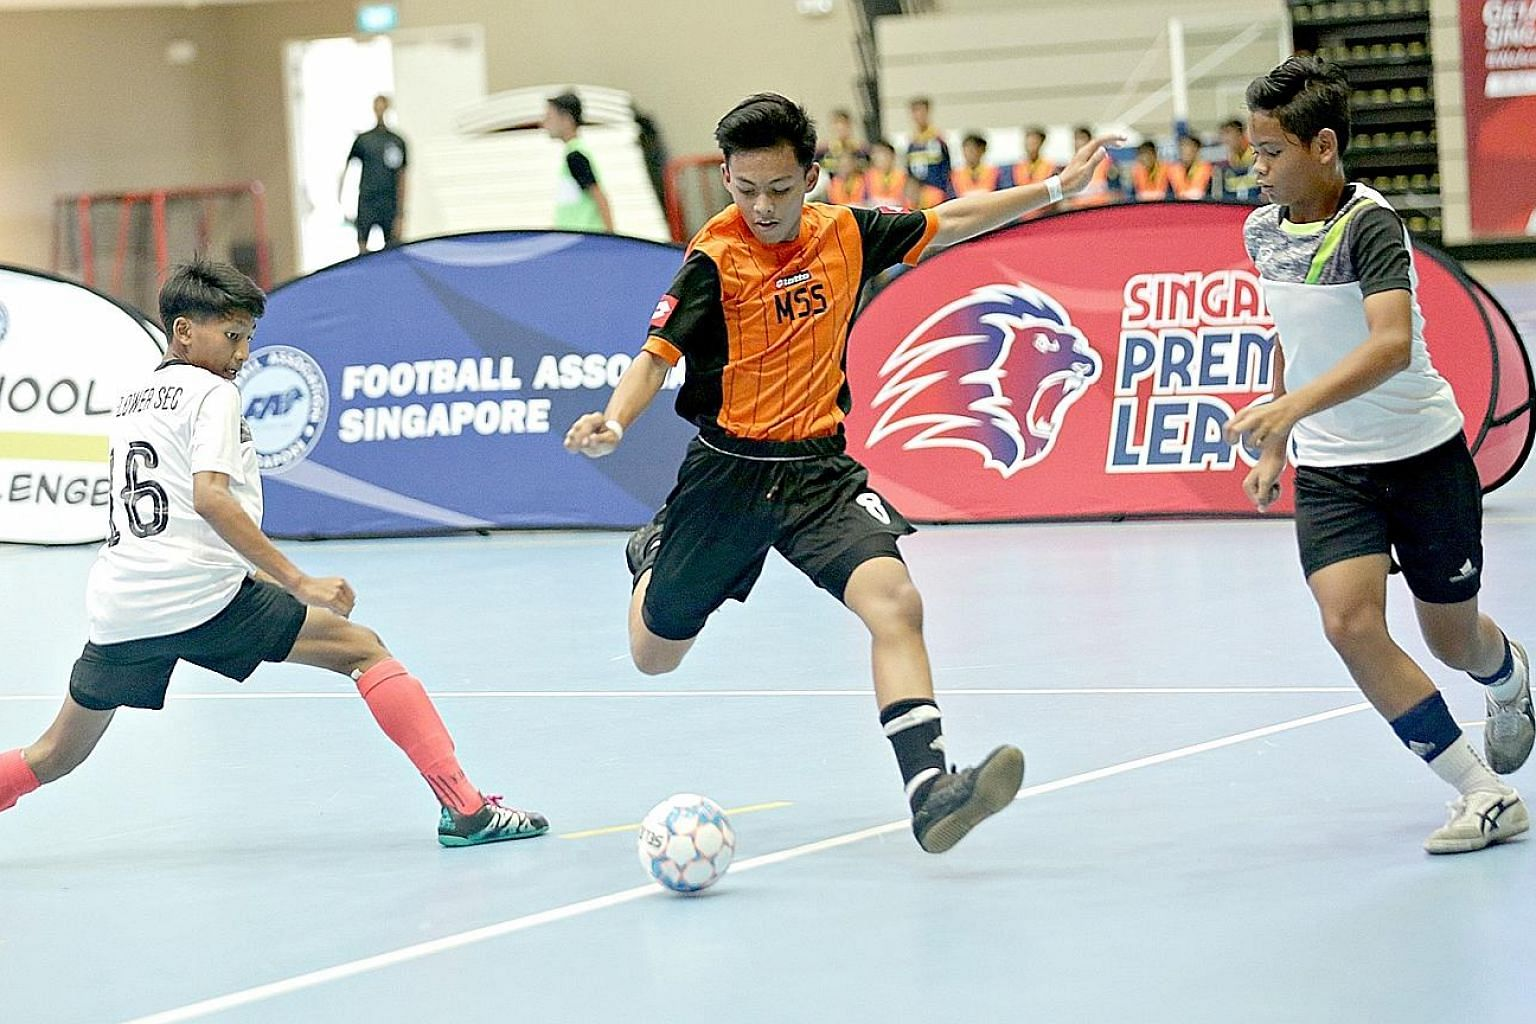 Last year, 40 teams from 35 schools competed for the Under-14 Inter-School Futsal Challenge trophy. This year, the number has reached 50.